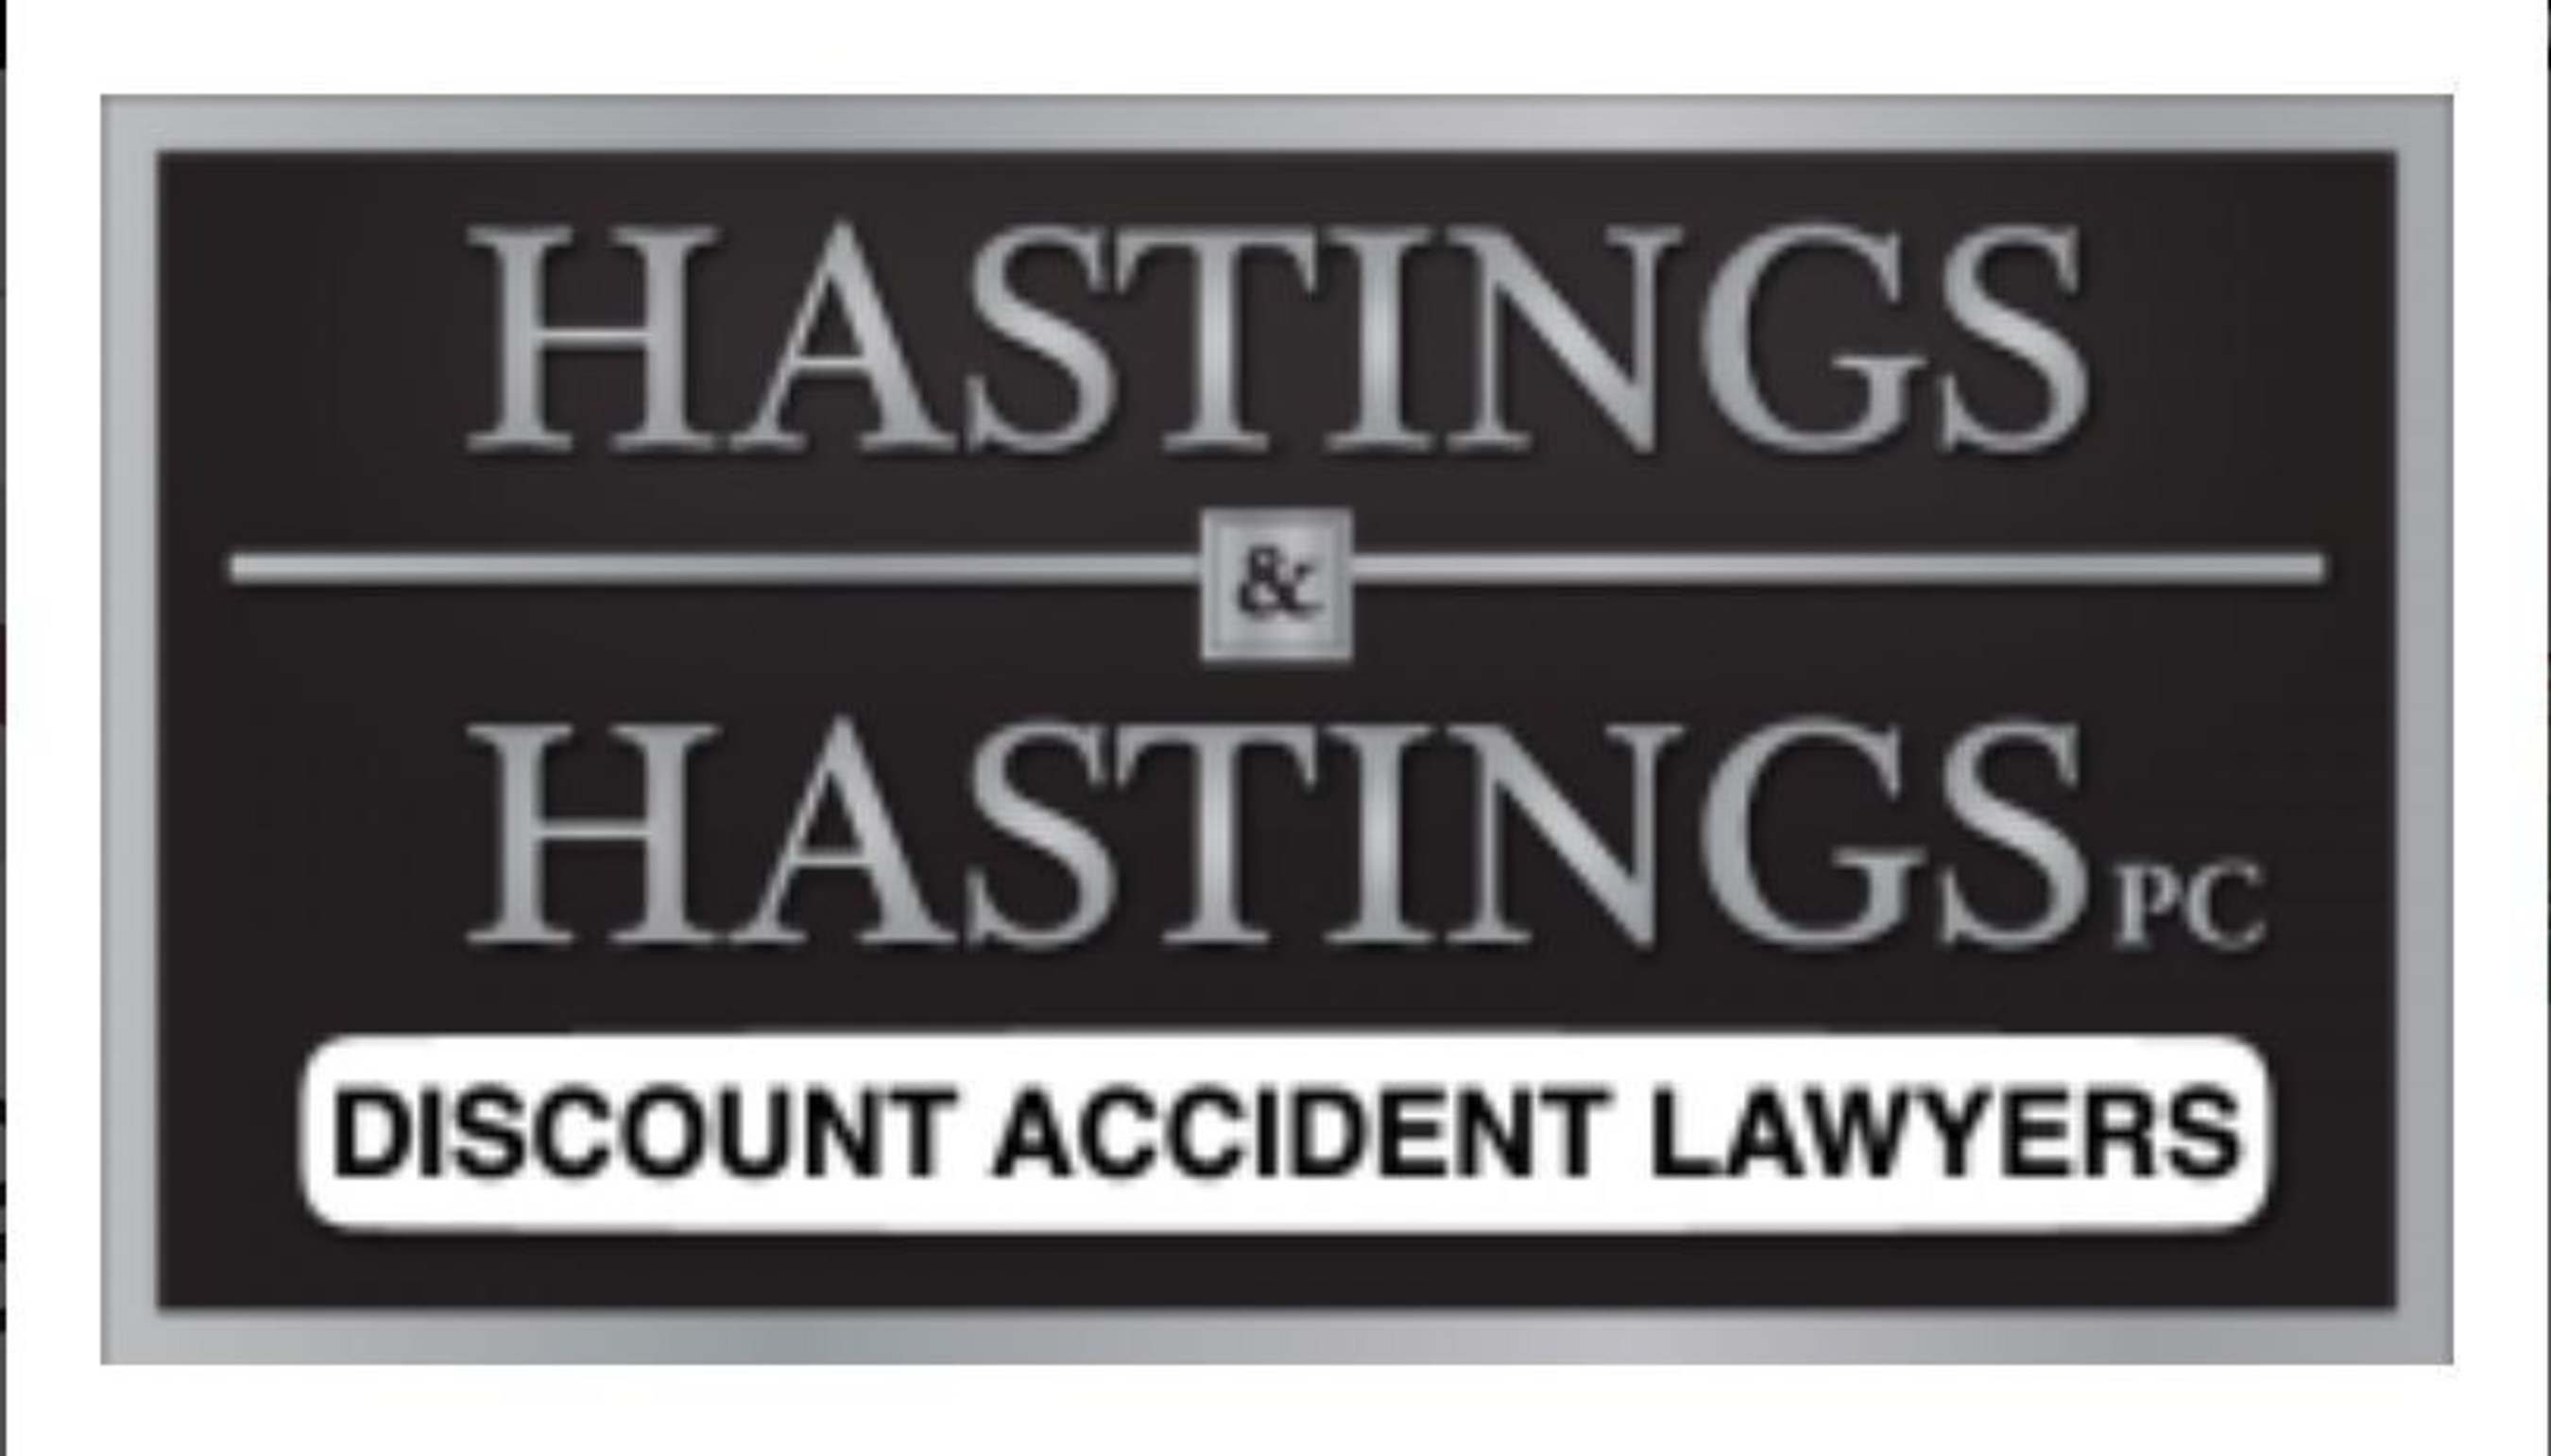 Hastings & Hastings Offers Advice to Holiday Travelers